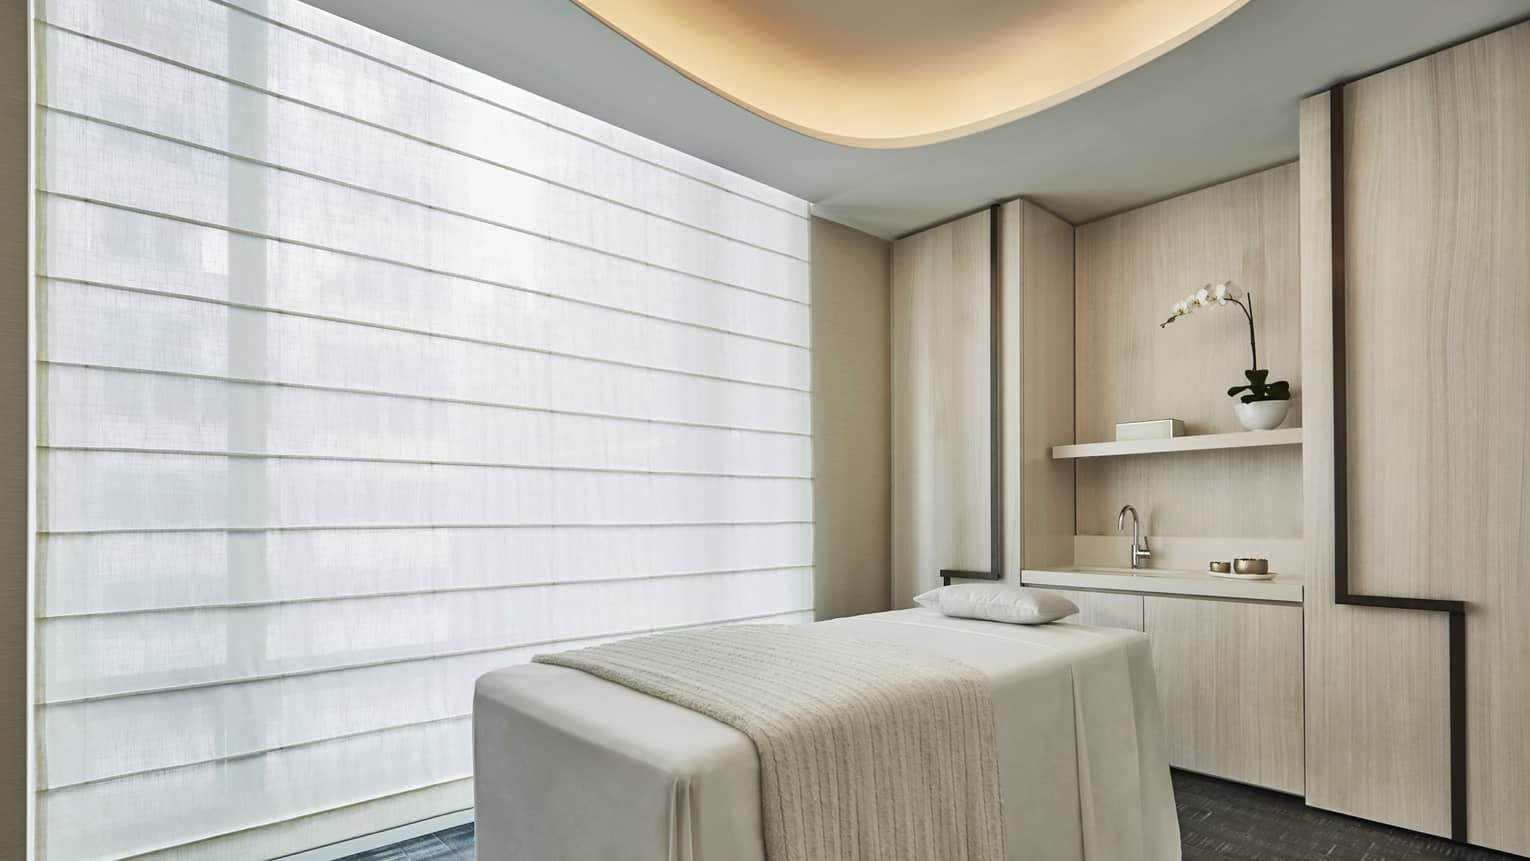 Spa massage table with white blanket by large window with shades, under light